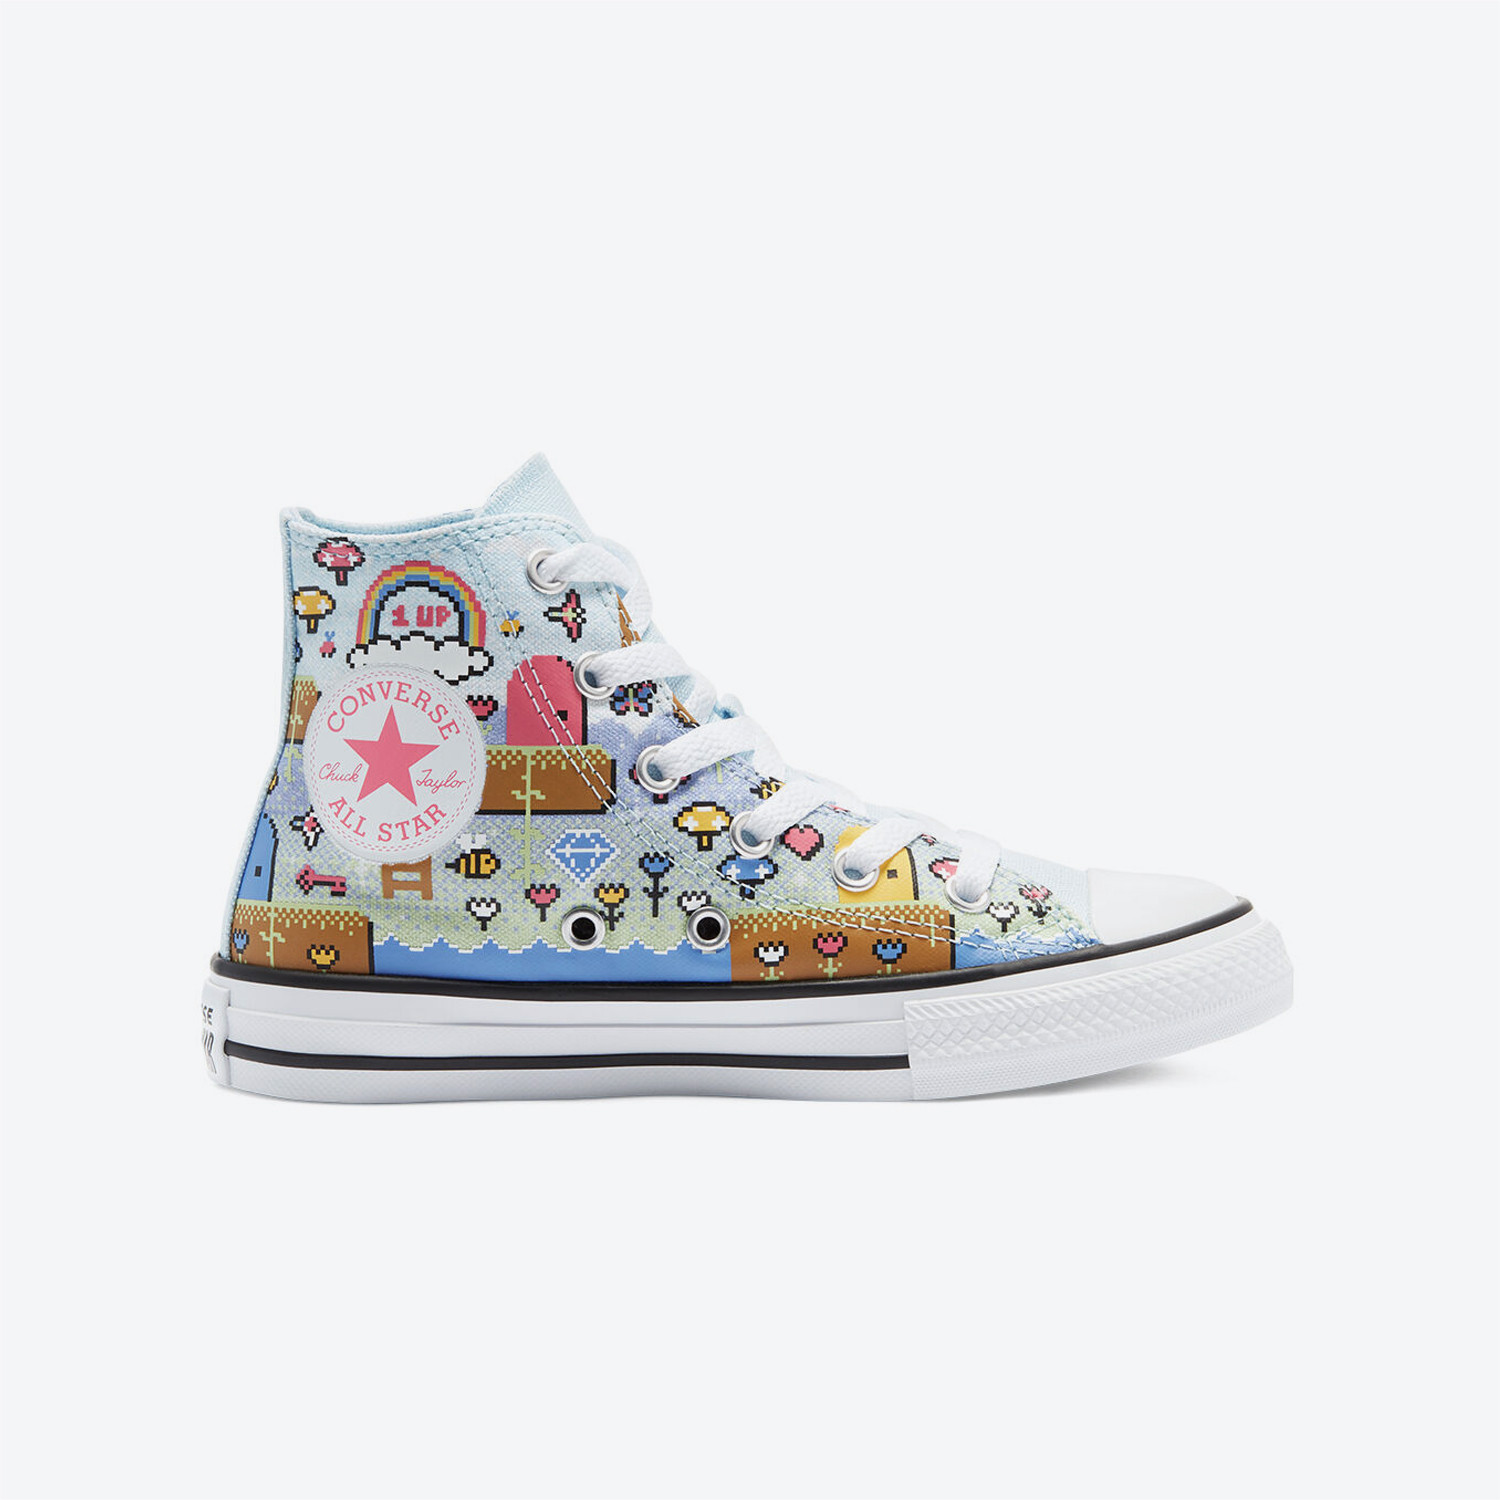 Converse Chuck Taylor All Star Gamer Παιδικά Παπούτσια (9000071227_51058)